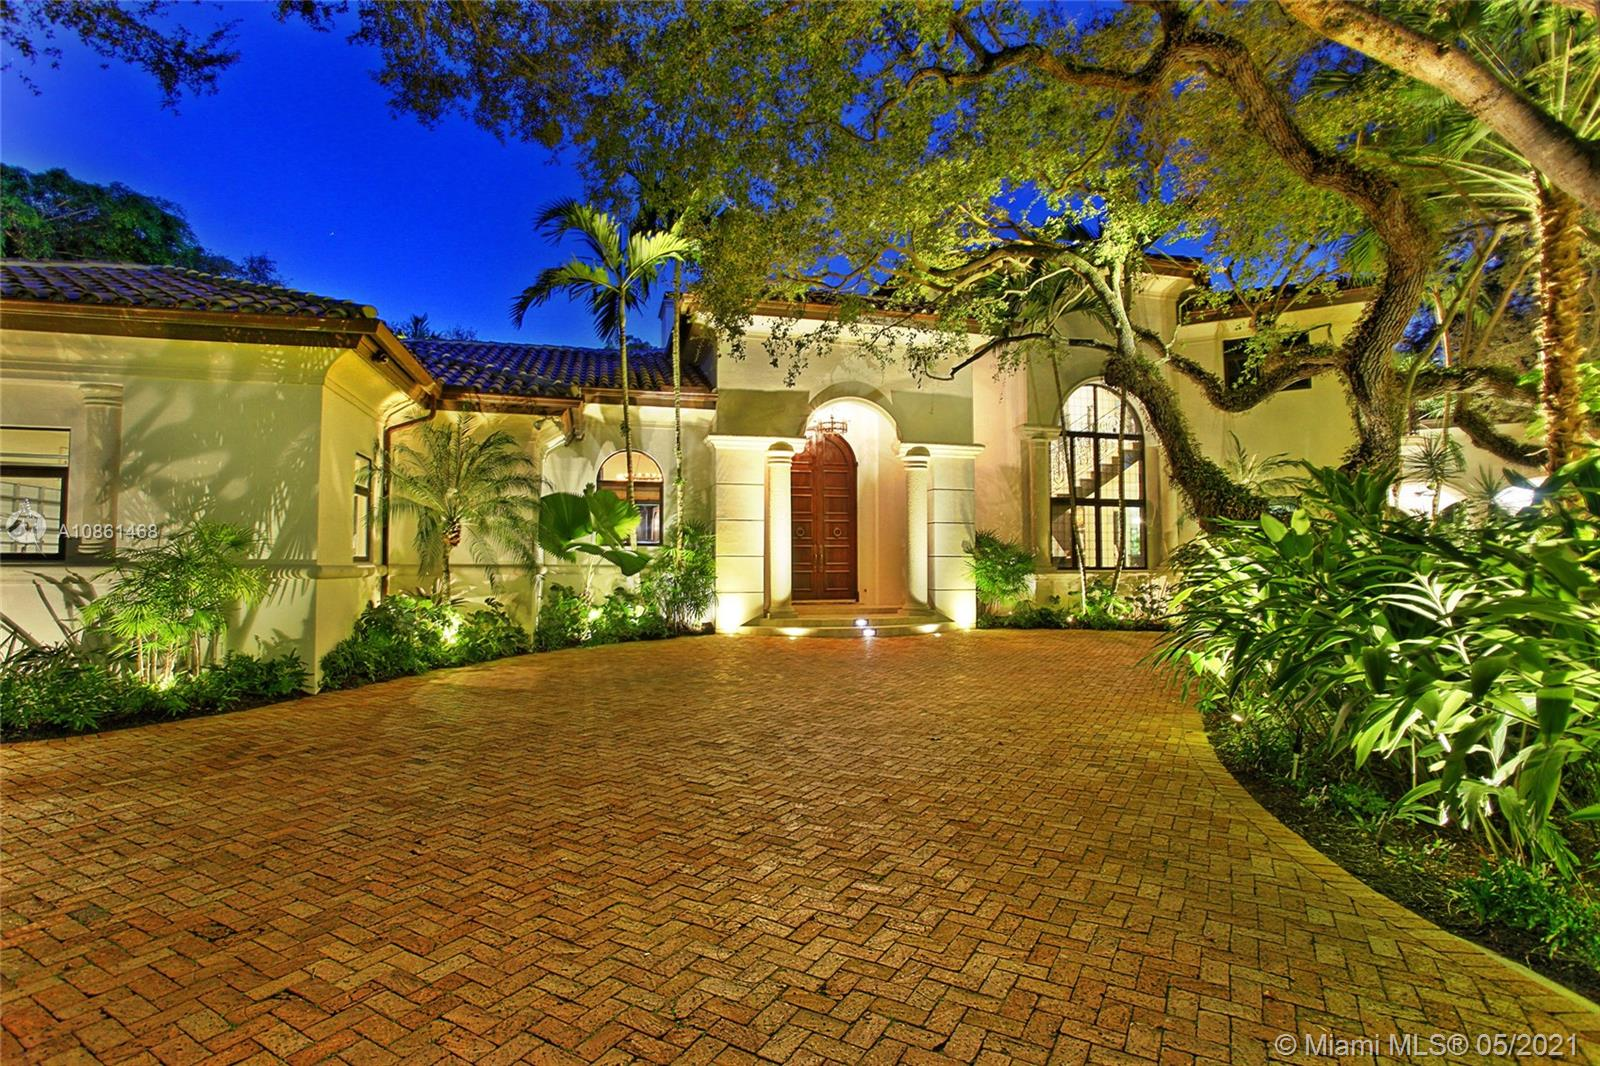 Located in the gated Snapper Creek Lakes community this amazing 2-story estate sits on a 45,430 SF lot surrounded by a mature oak canopy. The remodeled 6BR/8+1BA home offers 9,807 SF (total area under roof as per building specs) & includes a separate 2BR/2BA guest suite. Spacious living room w/fireplace, private dining area, a bar w/256-bottle glass wine display, natural stone finishes, family room & movie theater. The open gourmet kitchen sports eat-in marble center island, custom cabinetry & top-of-the-line Wolf, Sub-Zero & Miele appliances. 2nd floor principal suite features marble floors, private balcony overlooks the pool & Carrara marble bathroom w/steam & rain shower w/sunken spa tub. Resort-style outdoor areas include pool w/waterfall & hot tub, lush landscaping & private fire pit.